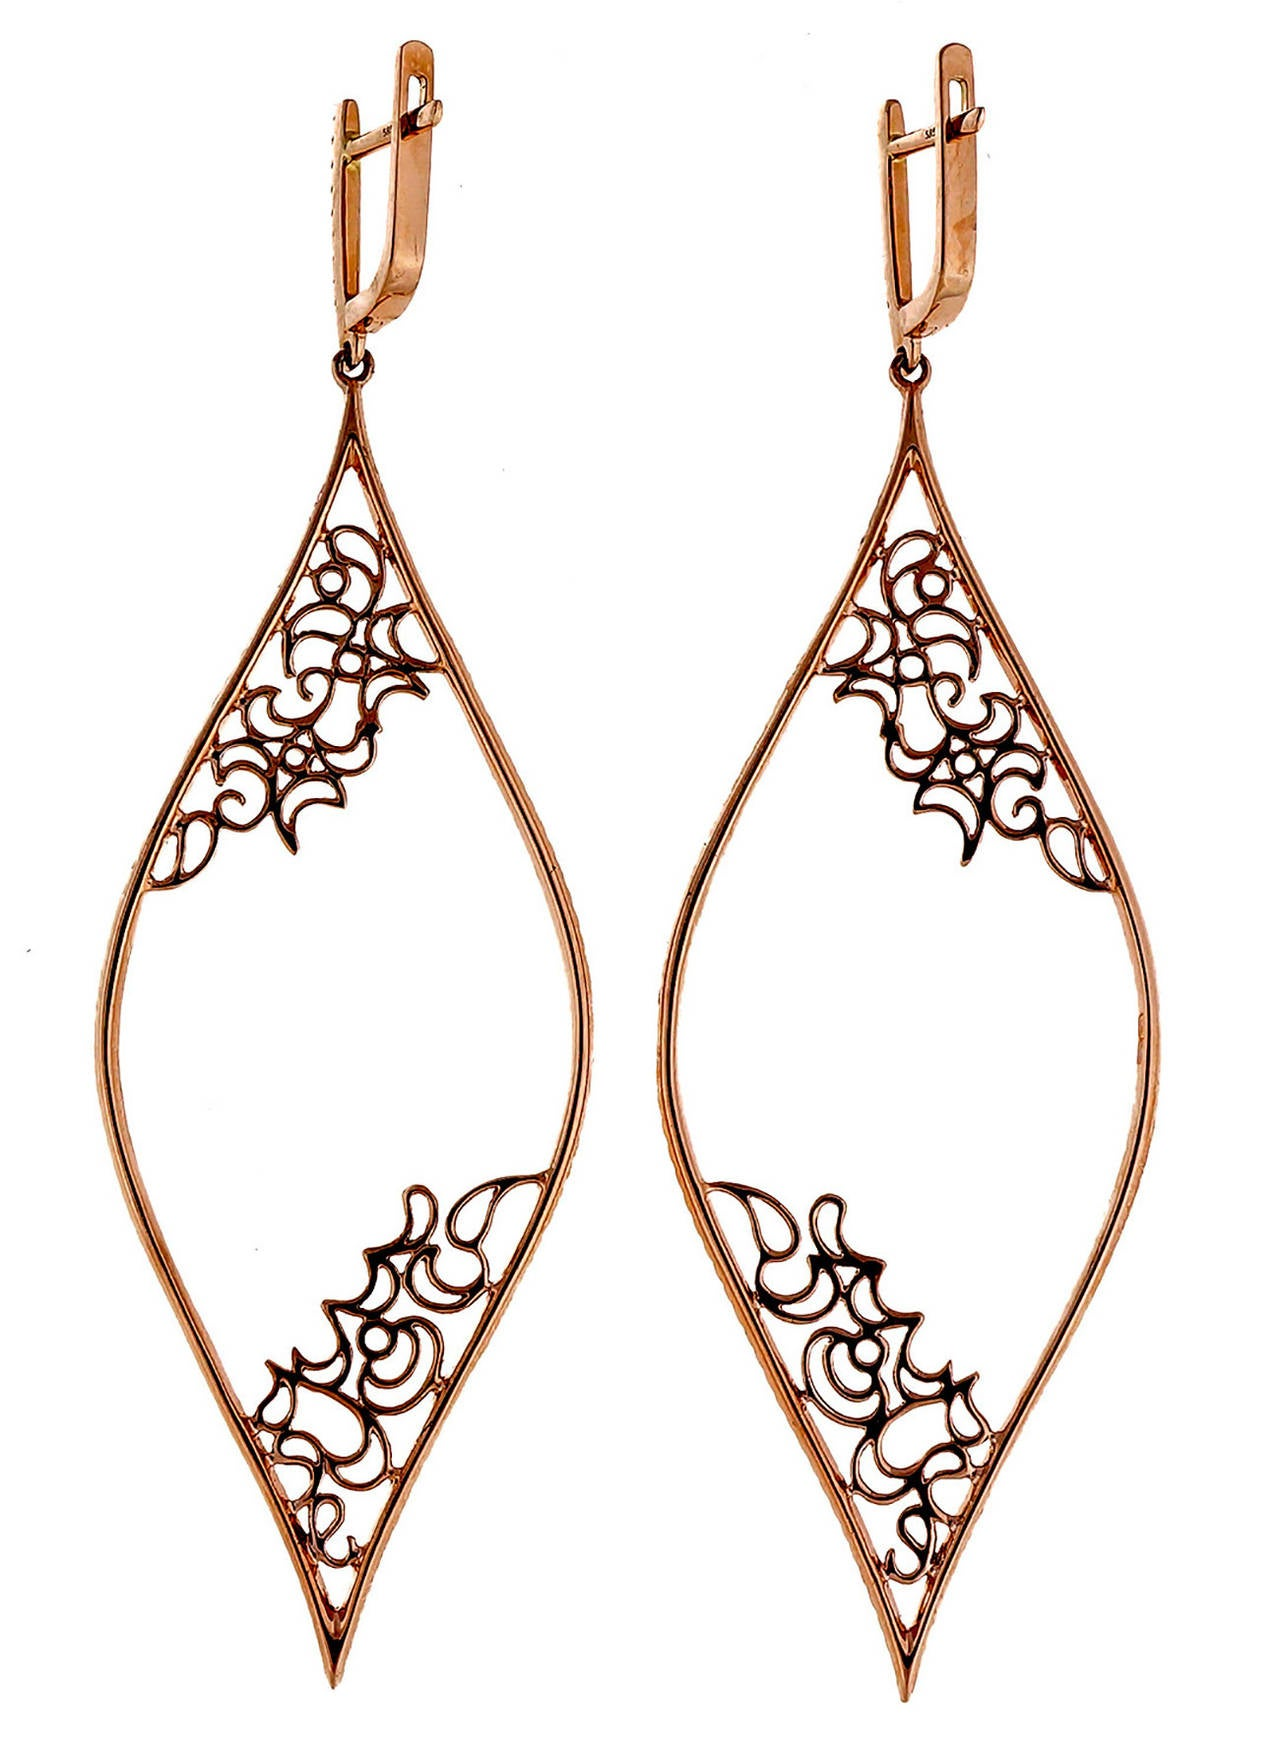 Limited edition Micro Pave set extra high grade designer diamond dangle earrings in 14k gold with bright white diamonds. Signed GB 14k 585. Safe post and hinge tops. Hinged construction. The finest of diamond and workmanship. On Peter's now famous